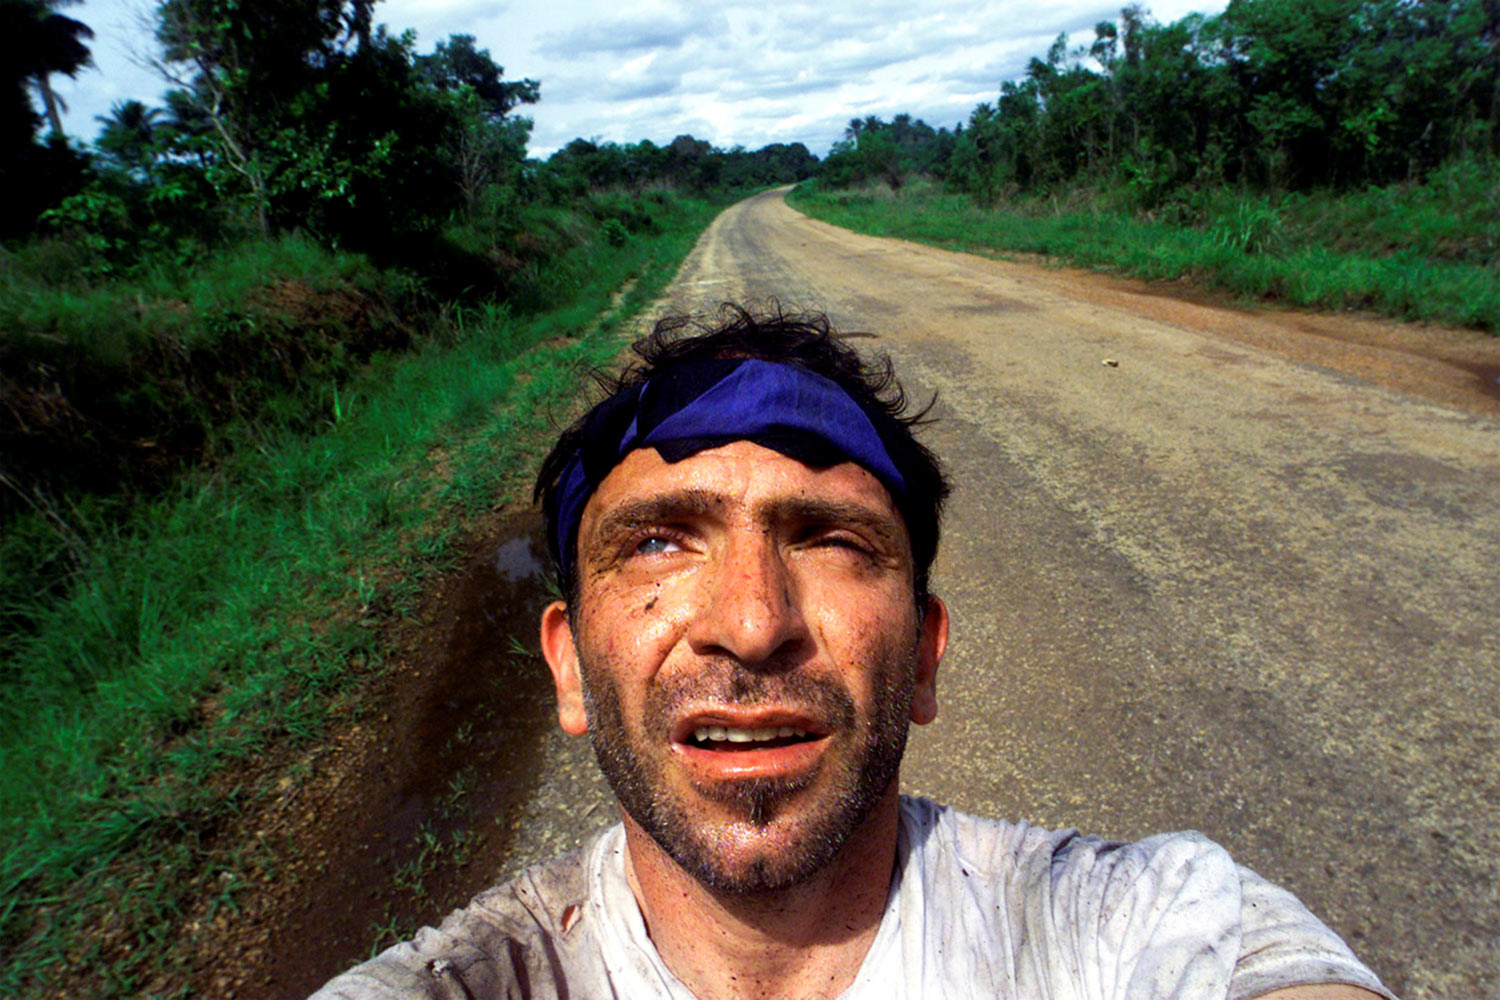 Yannis Behrakis takes a self portrait after surviving an ambush by Revolutionary United Front rebels in the jungle of Sierra Leone when Kurt Schork and Miguel Moreno were killed, May 2000. (REUTERS/Yannis Behrakis)